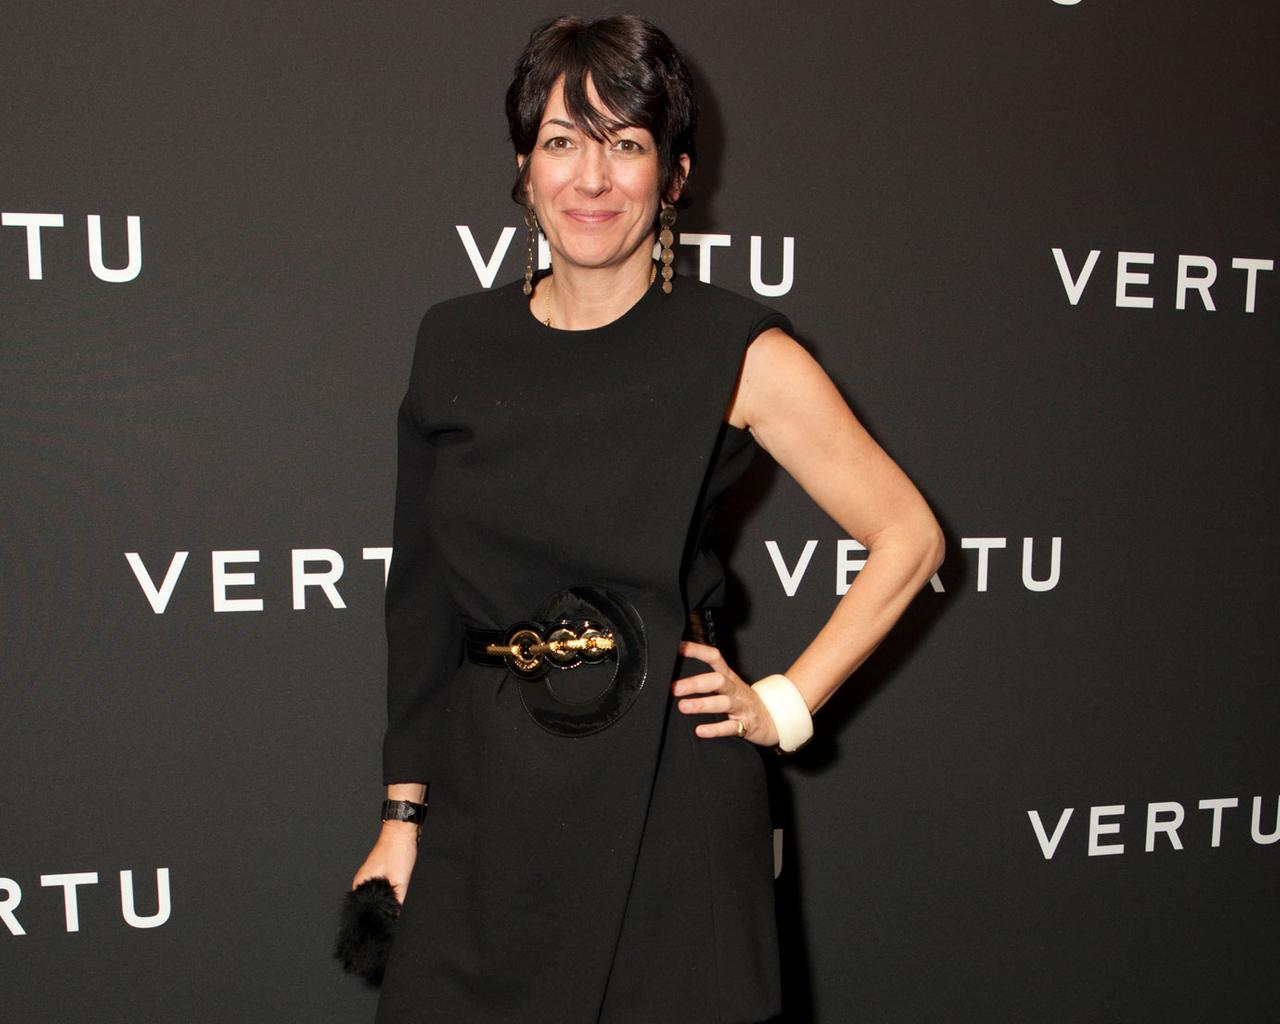 Ghislaine Maxwell Wont Get the Prison Move She Asked For